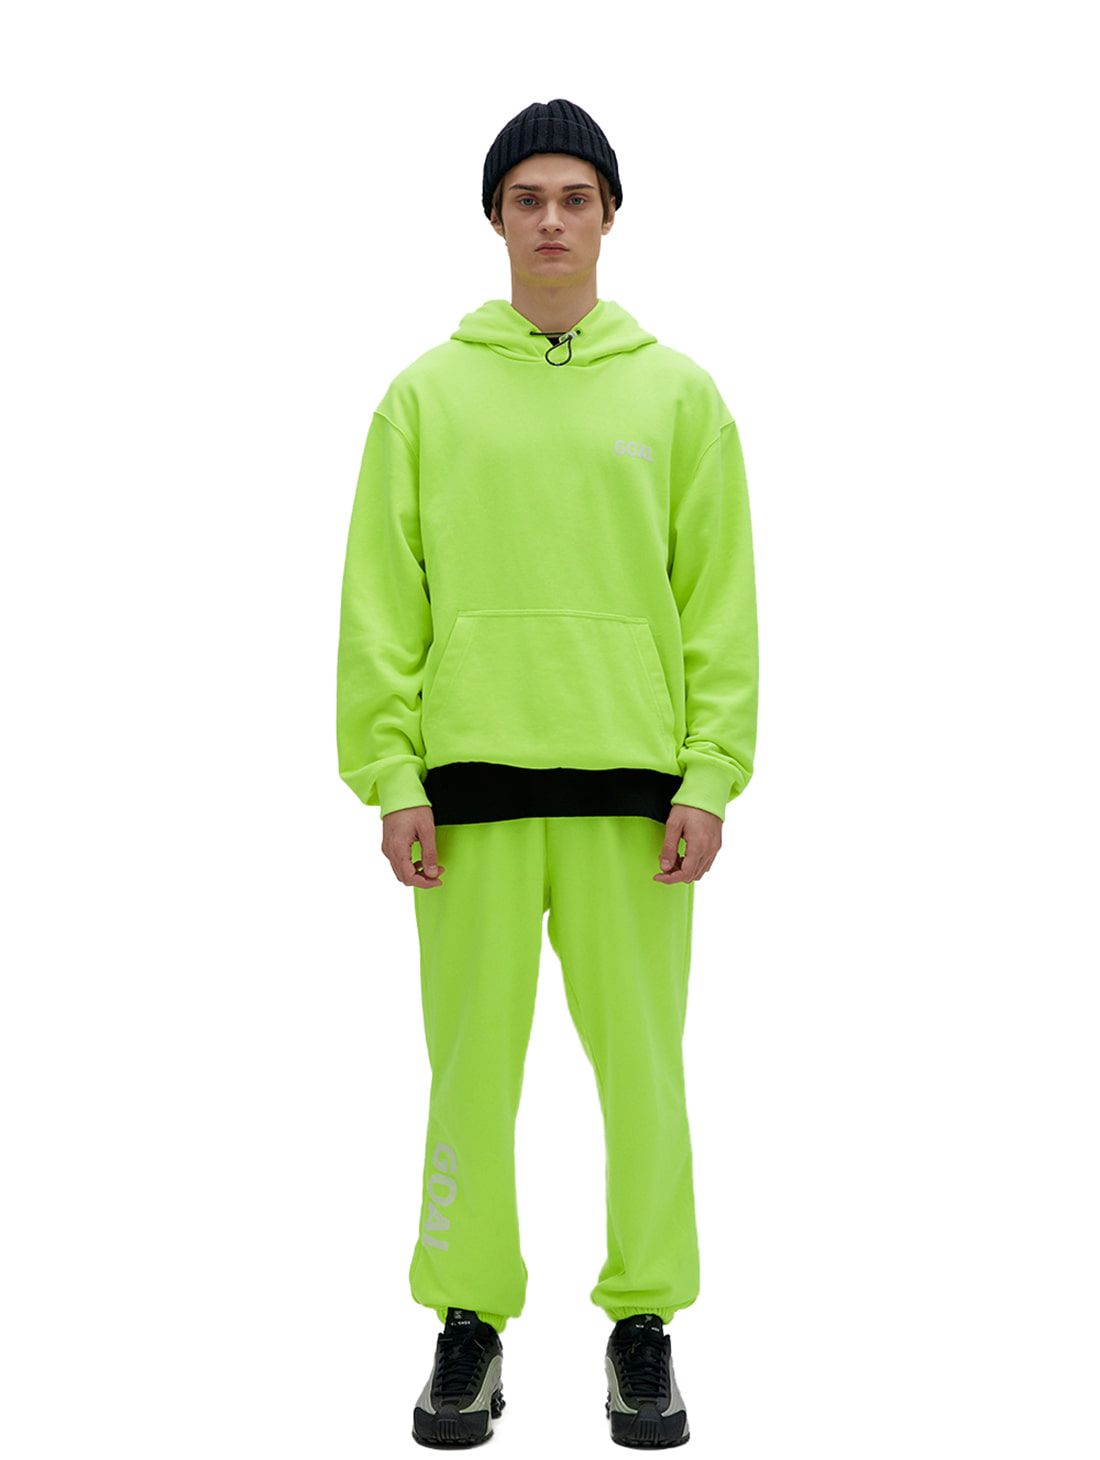 [10% OFF] FLOCKING HOODIE & PANTS SET - LIME YELLOW